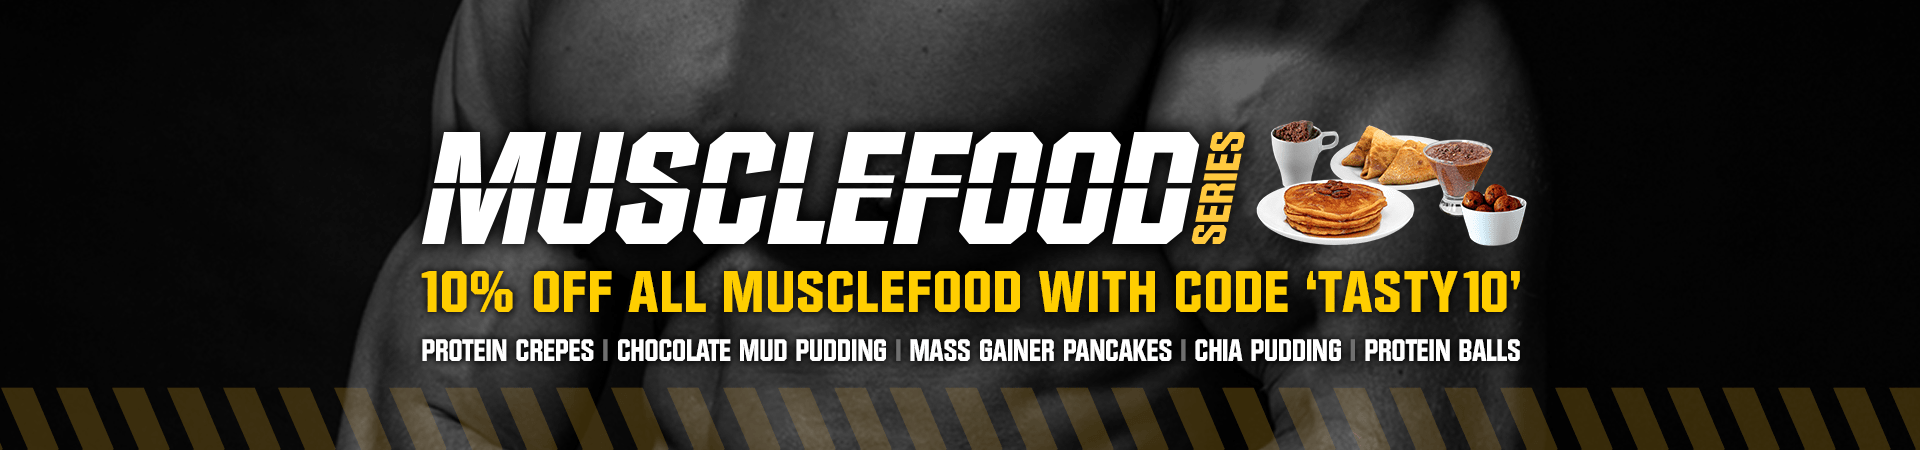 Muscle Foods 10 Off